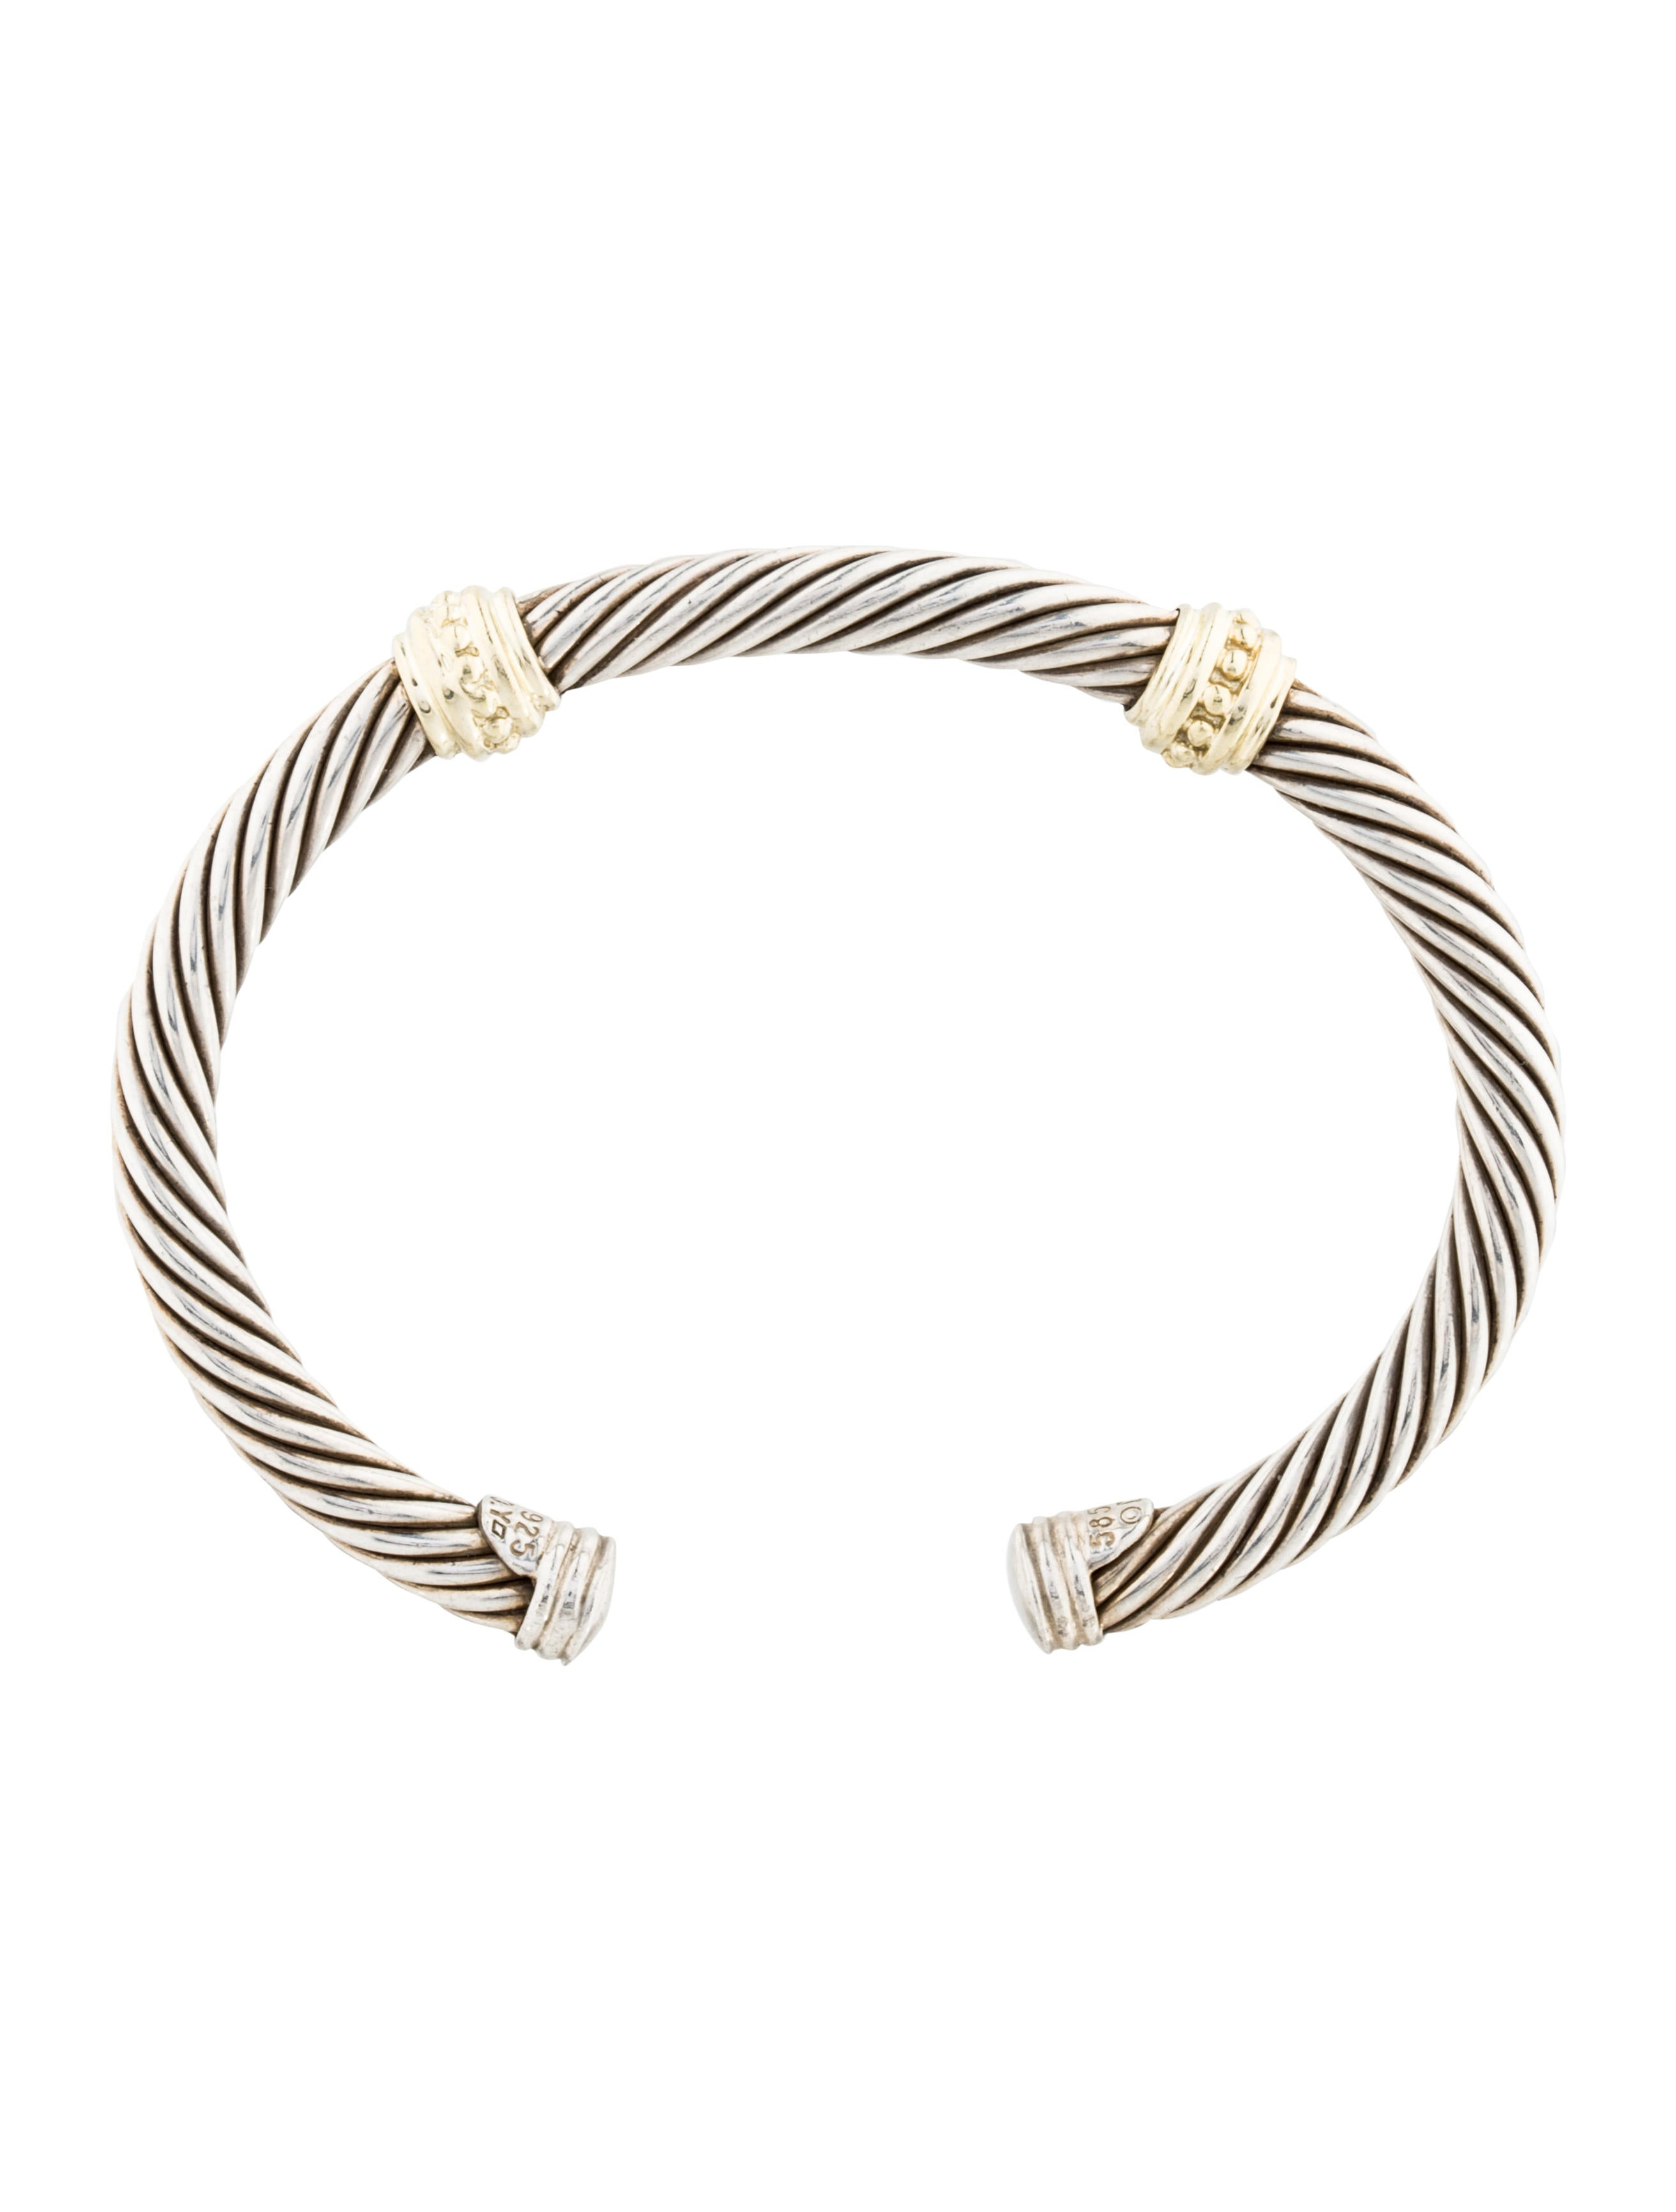 David yurman double station cable bracelet bracelets for David yurman inspired bracelet cable